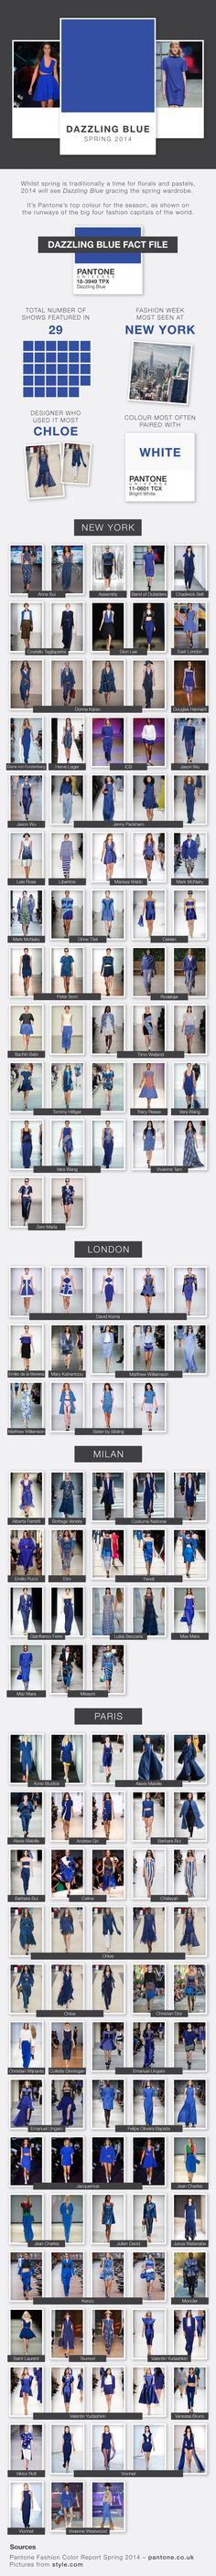 Dazzling Blue: The Pantone Color For Spring 2014 On The Runways #Infographic #Fashion #Runway #LifeStyle